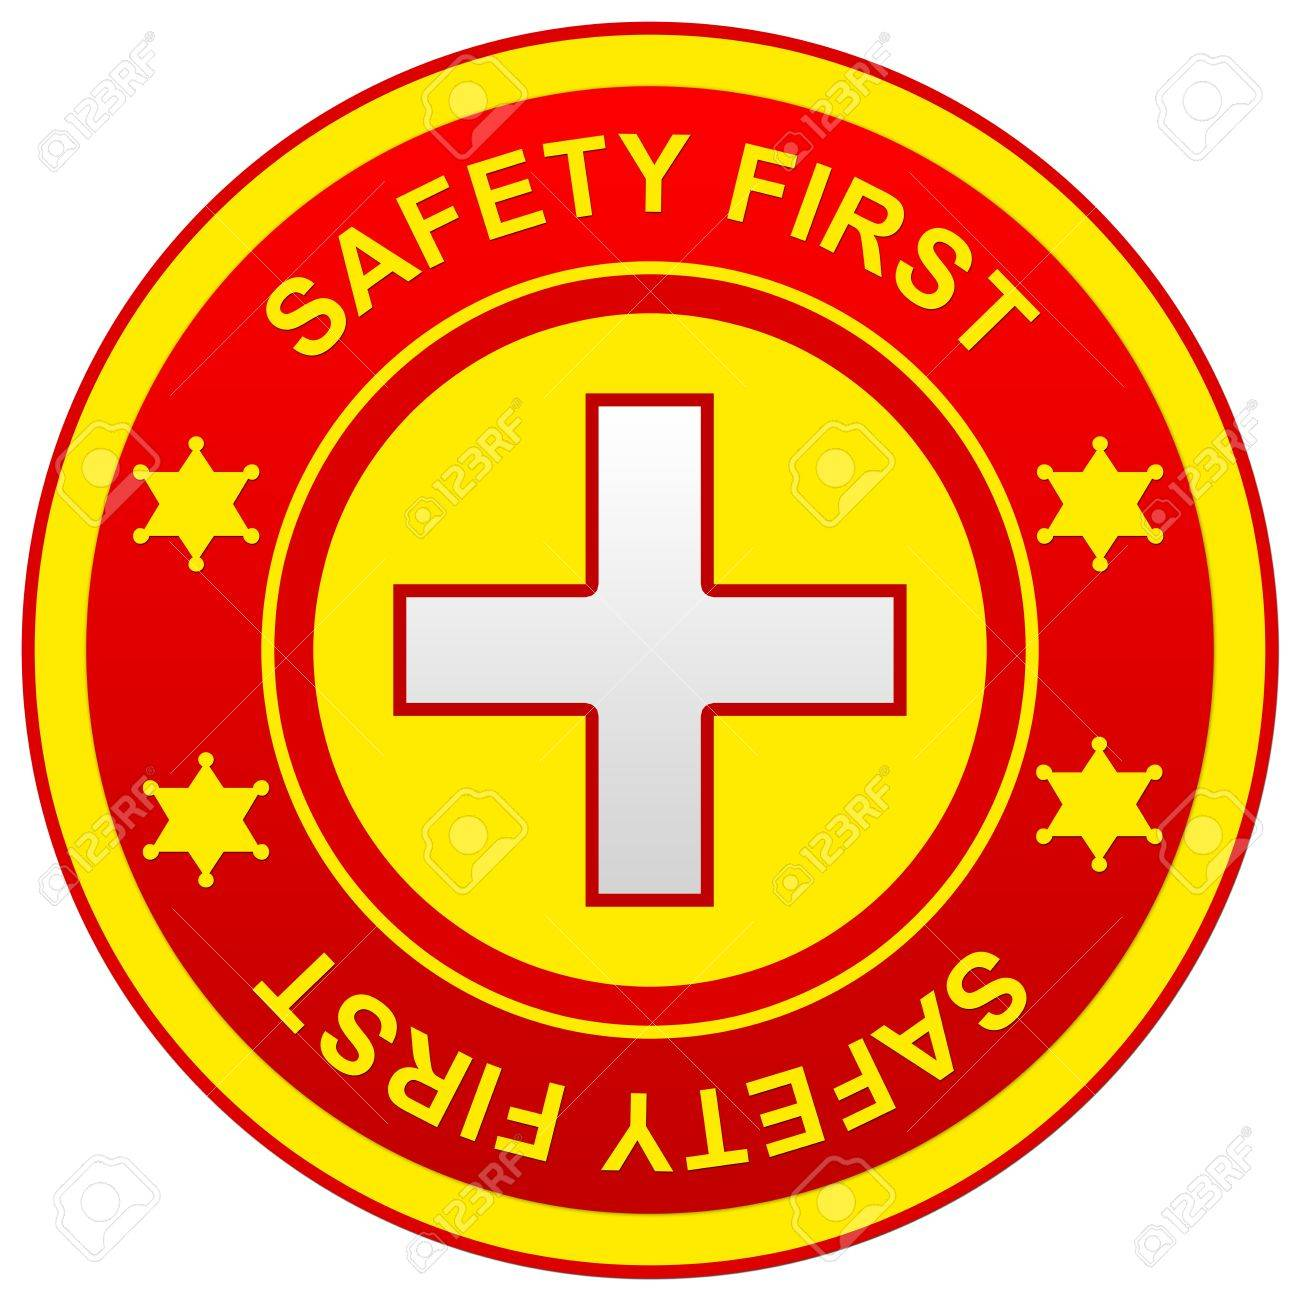 The Yellow and Red Circle Safety First Sign Isolated on White Background Stock Photo - 14670941